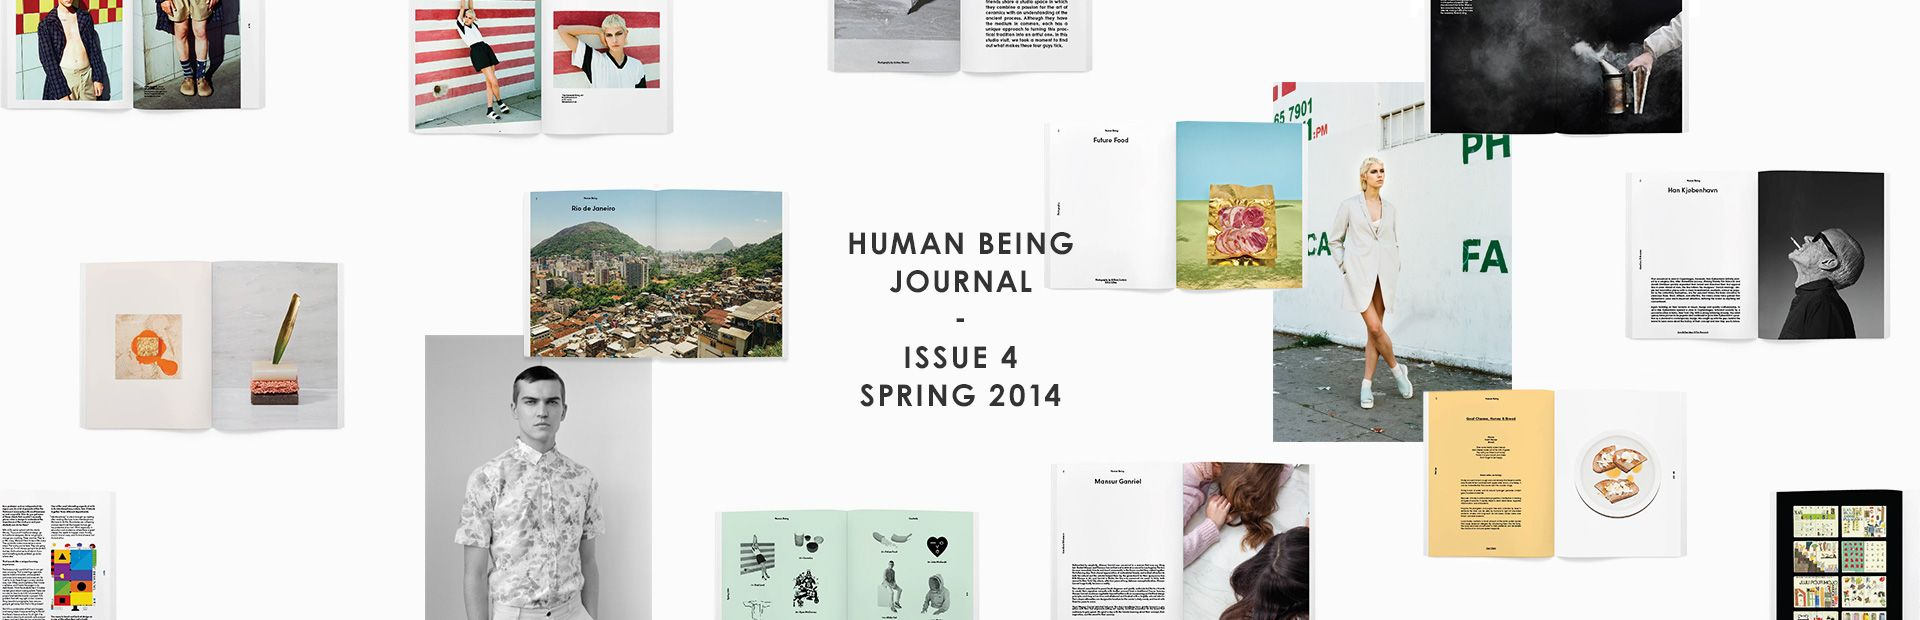 Human Being Journal Issue 4